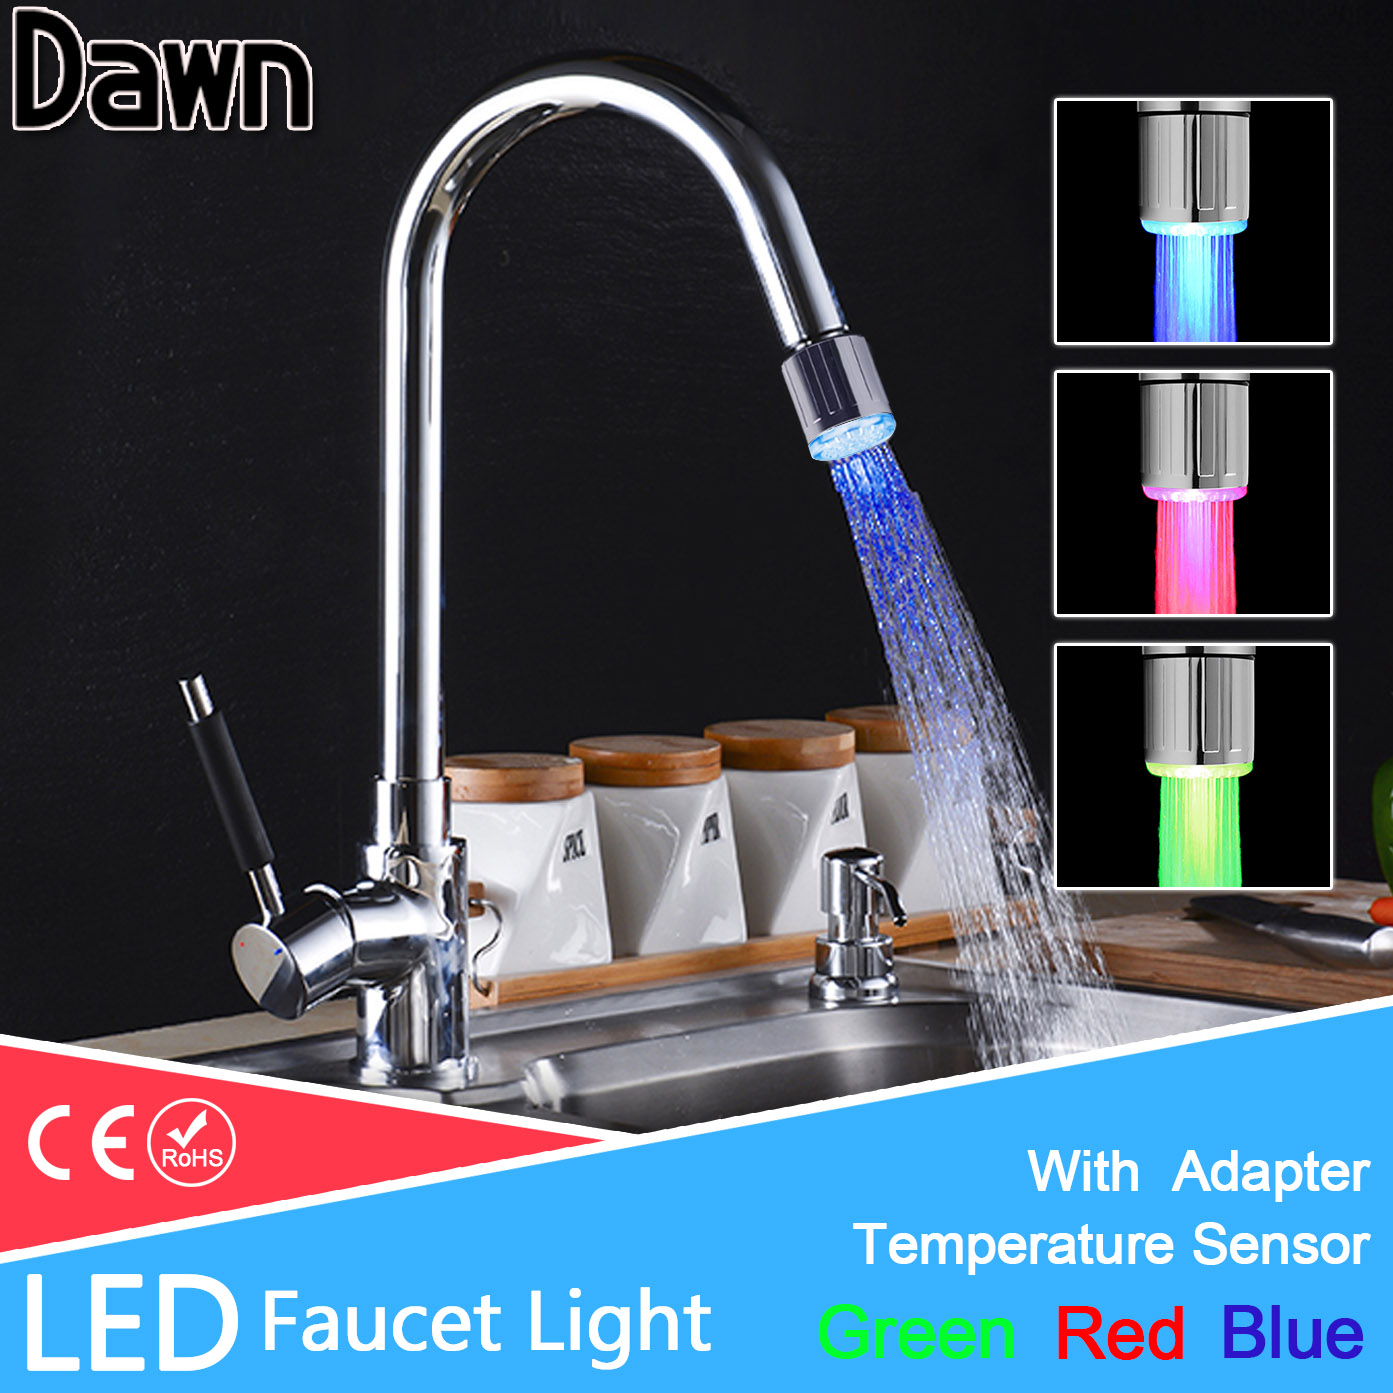 LED Faucet Light Temperature Sensor RGB Glow Shower Water Shower Head Stream Sink Tap Torneira Bathroom Kitchen Accessories цена